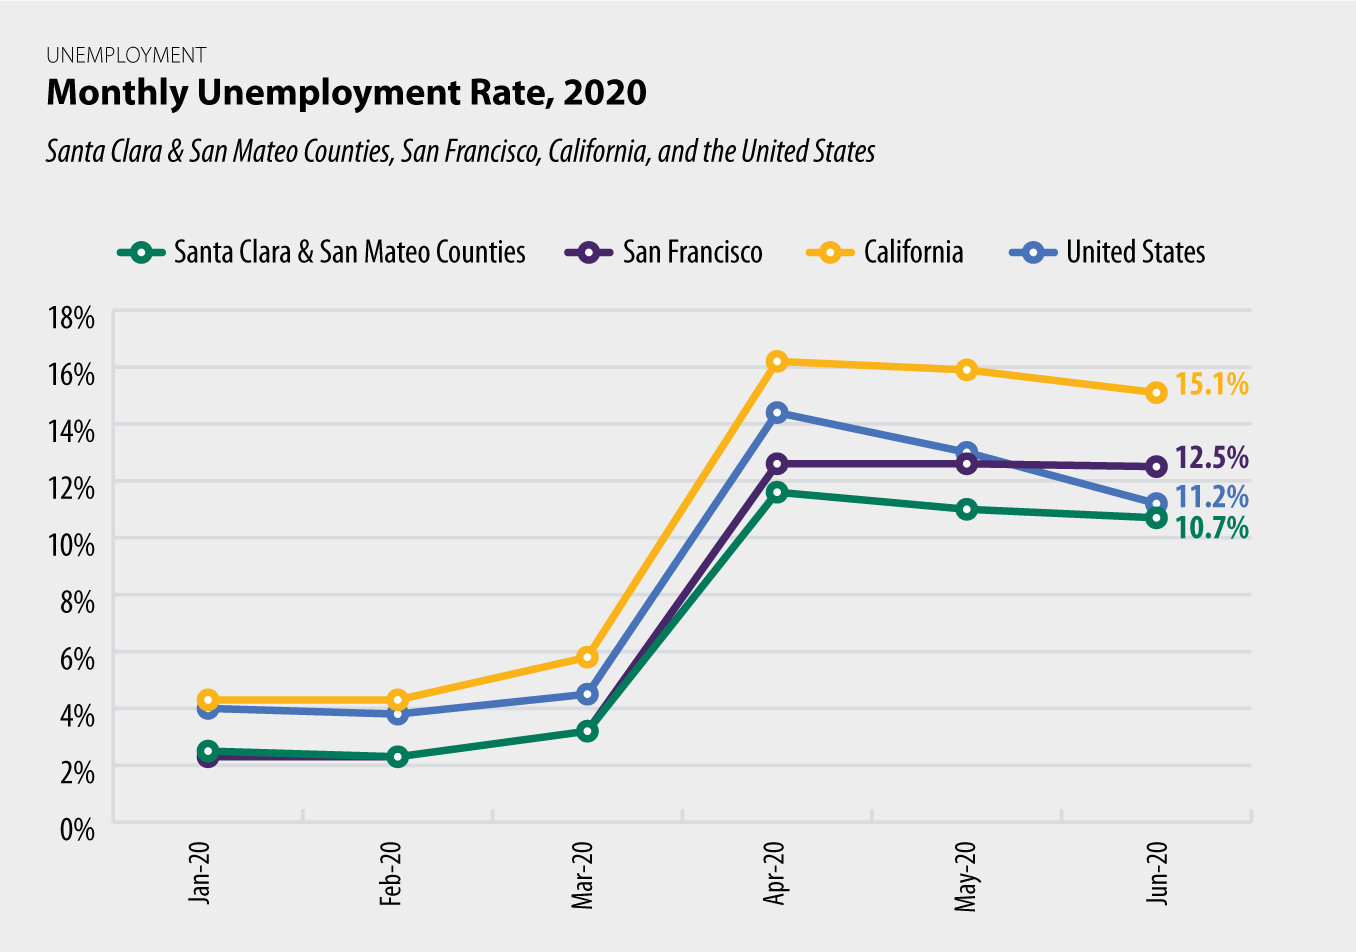 Monthly Unemployment Rate - Detail chart